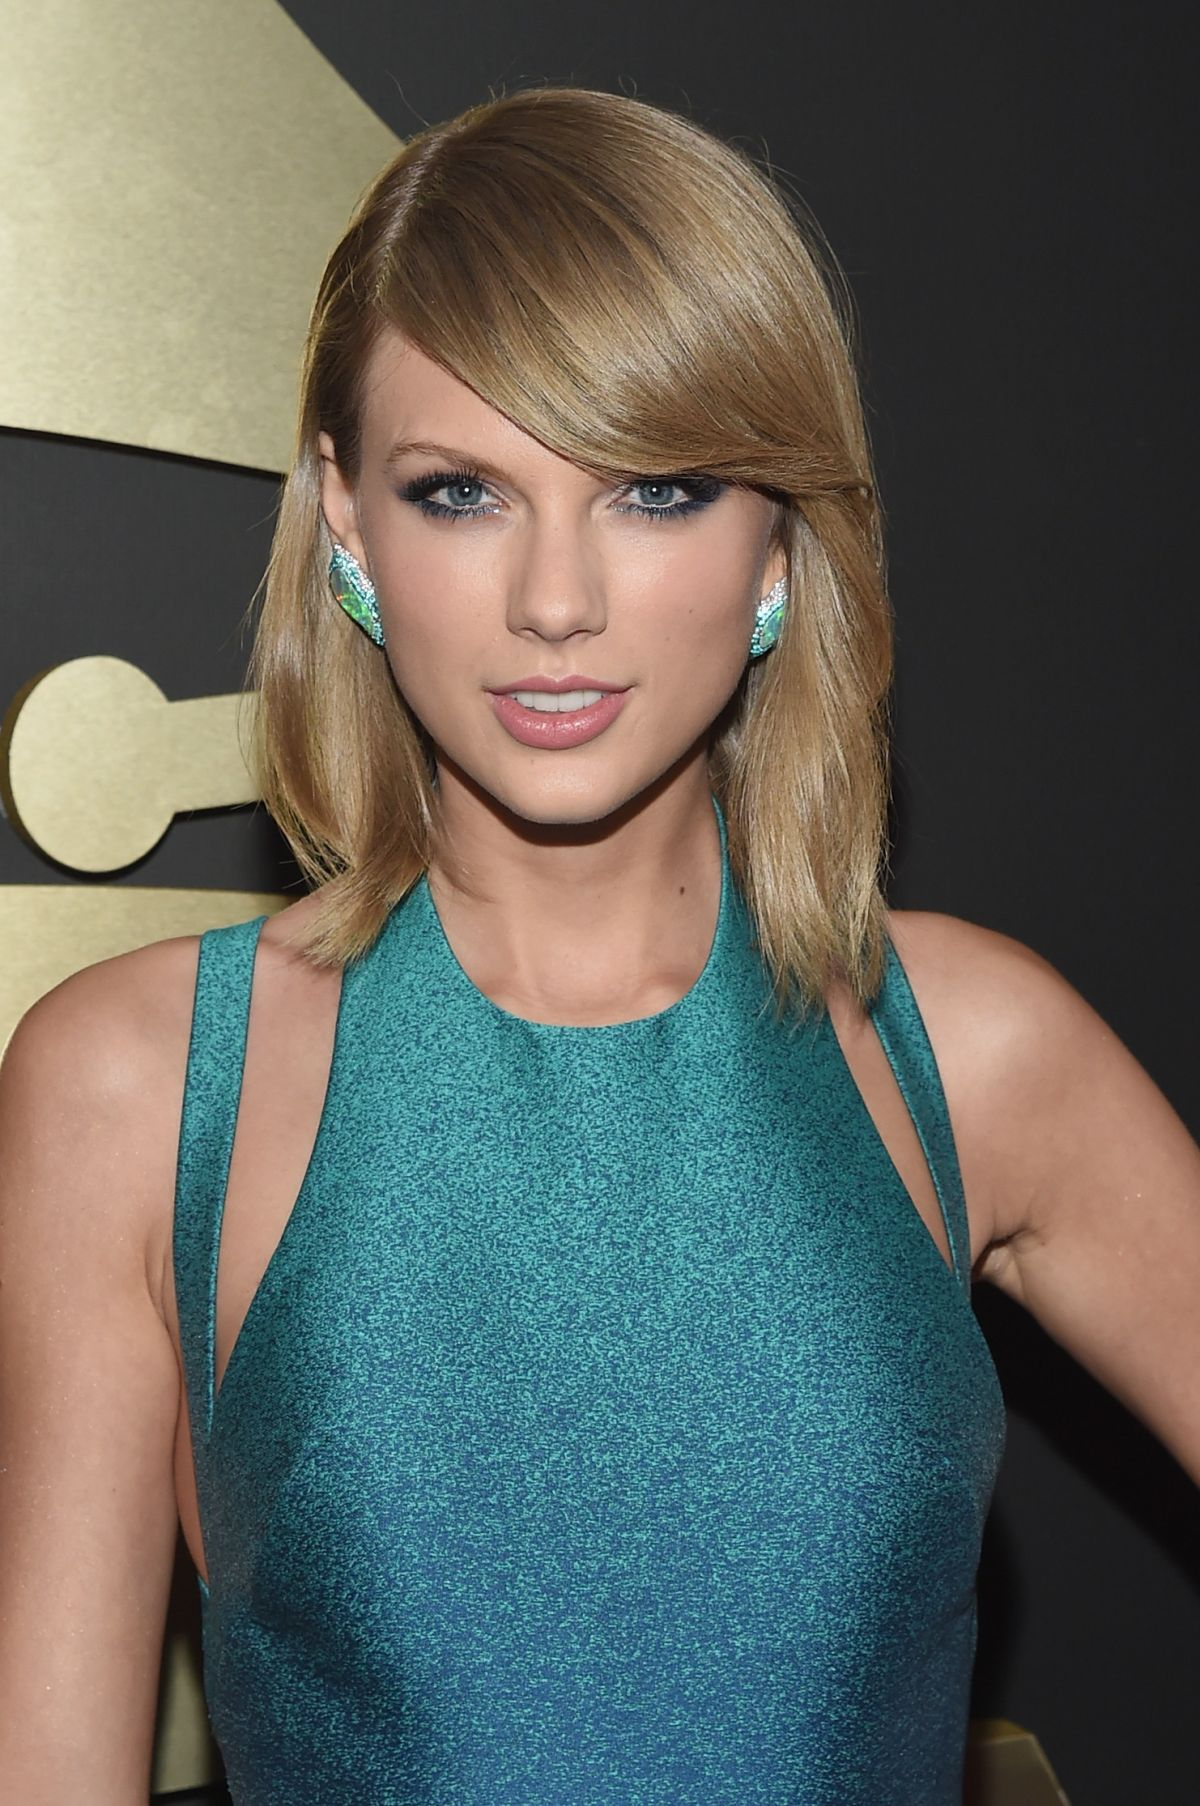 TAYLOR SWIFT at 2015 Grammy Awards in Los Angeles - HawtCelebs